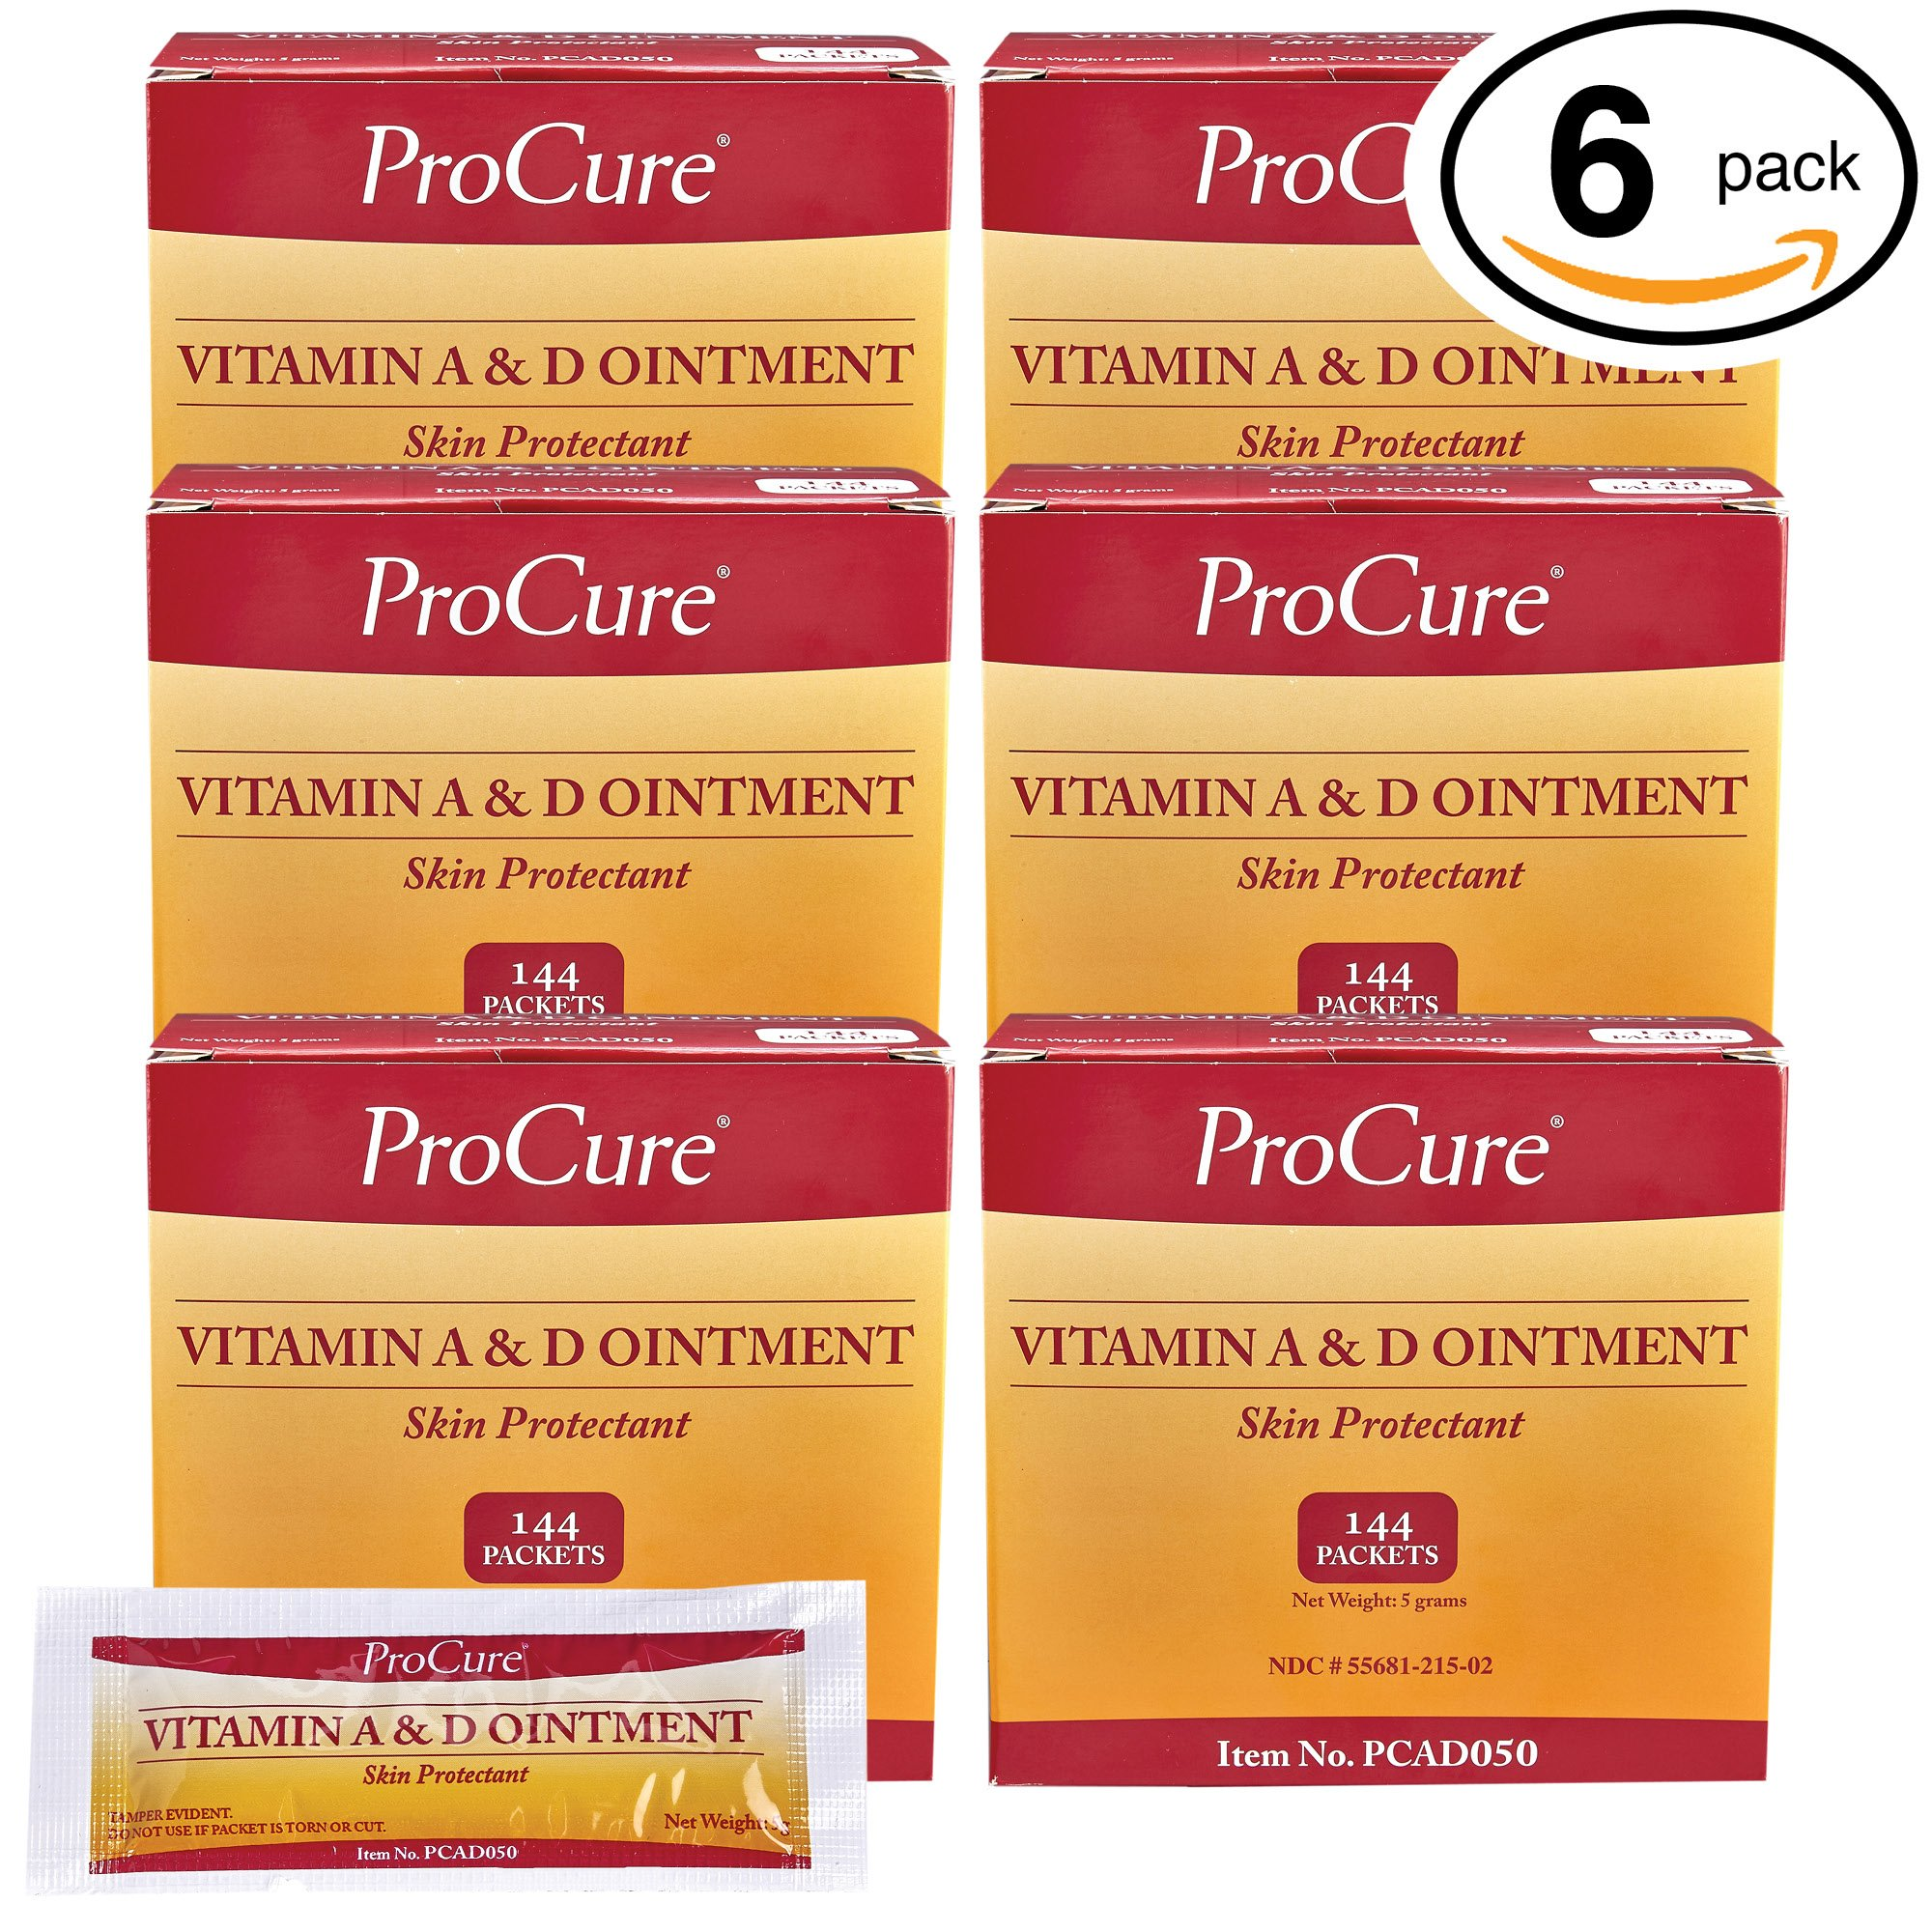 ProCure Vitamin A and D Ointment, Treats and Prevents Diaper Rash - Lanolin and Petrolatum Skin Protectant Formula Seals in Wetness - for Cuts, Dry or Chaffed Skin (6 Pack, 144 Packets)